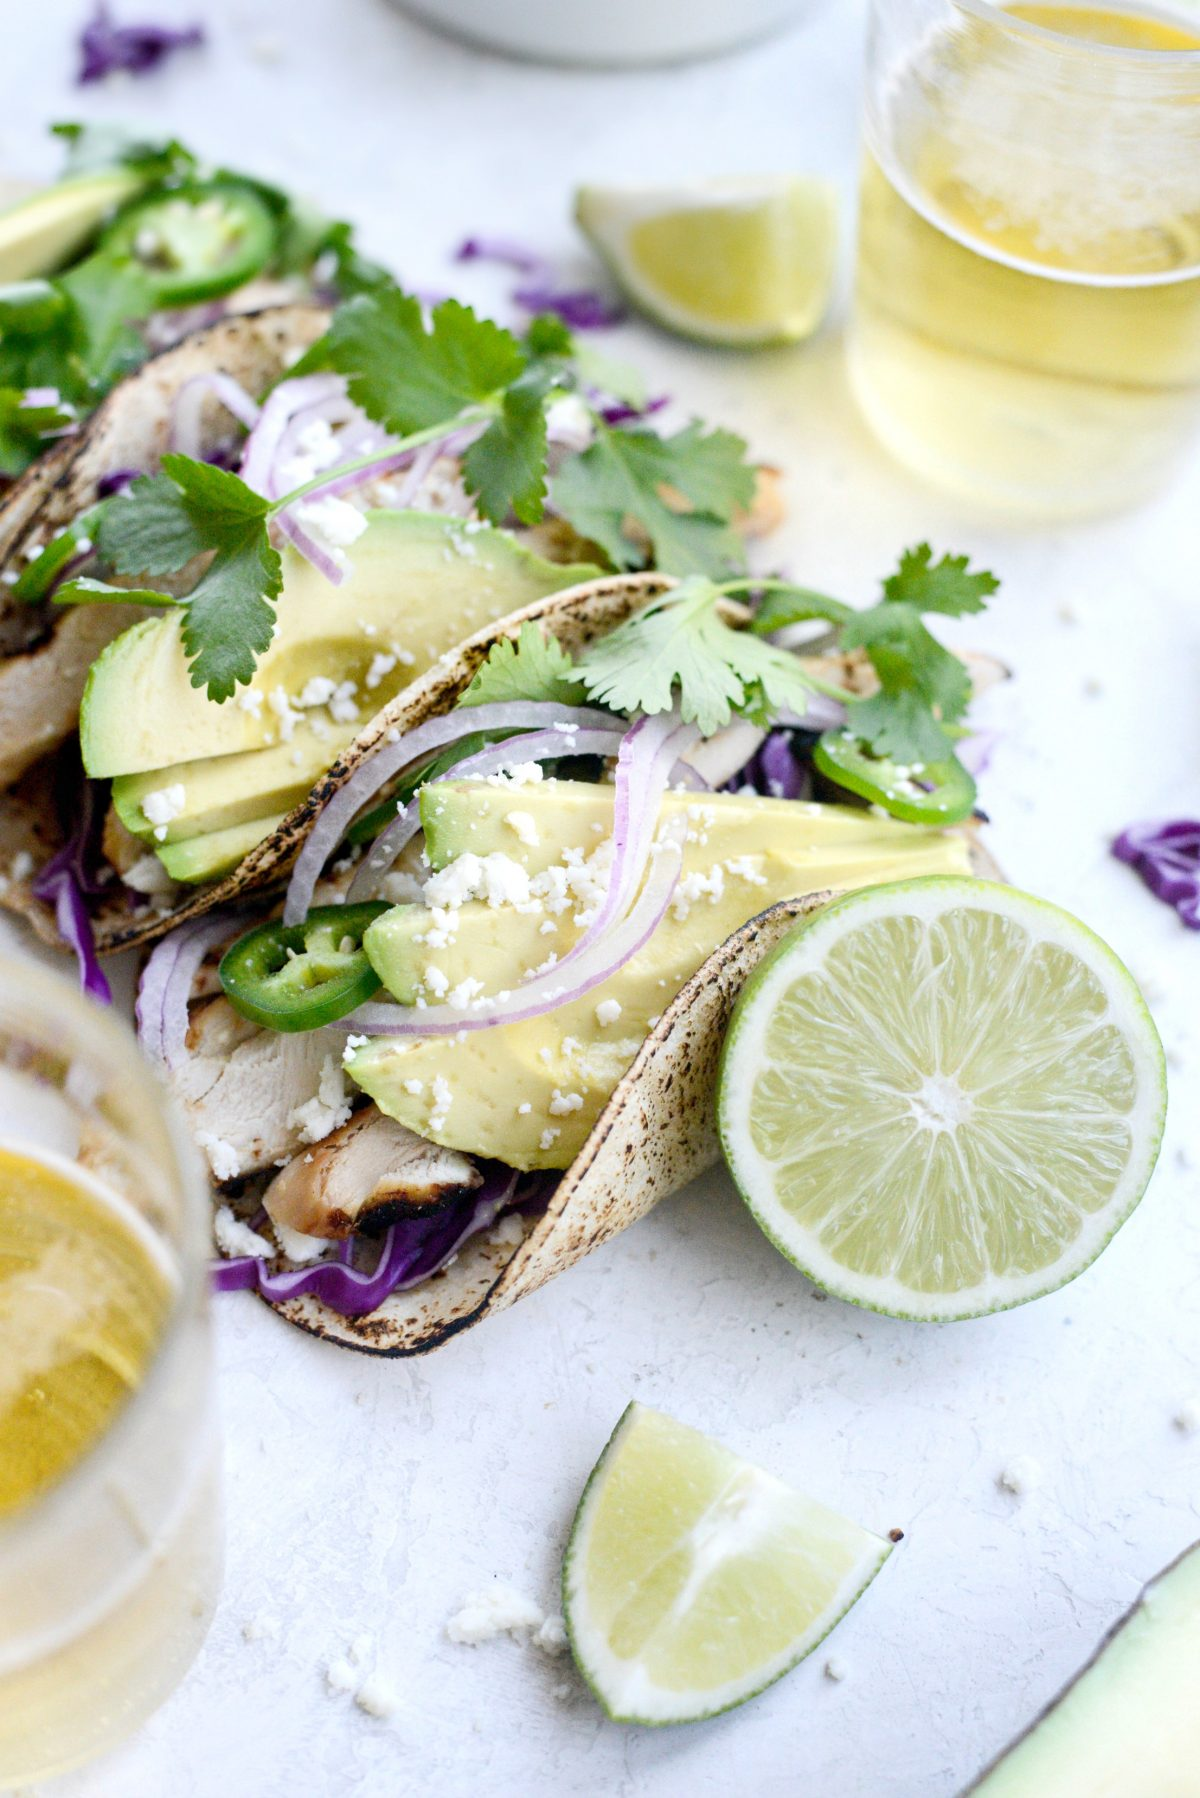 Grilled Tequila Lime Chicken Tacos